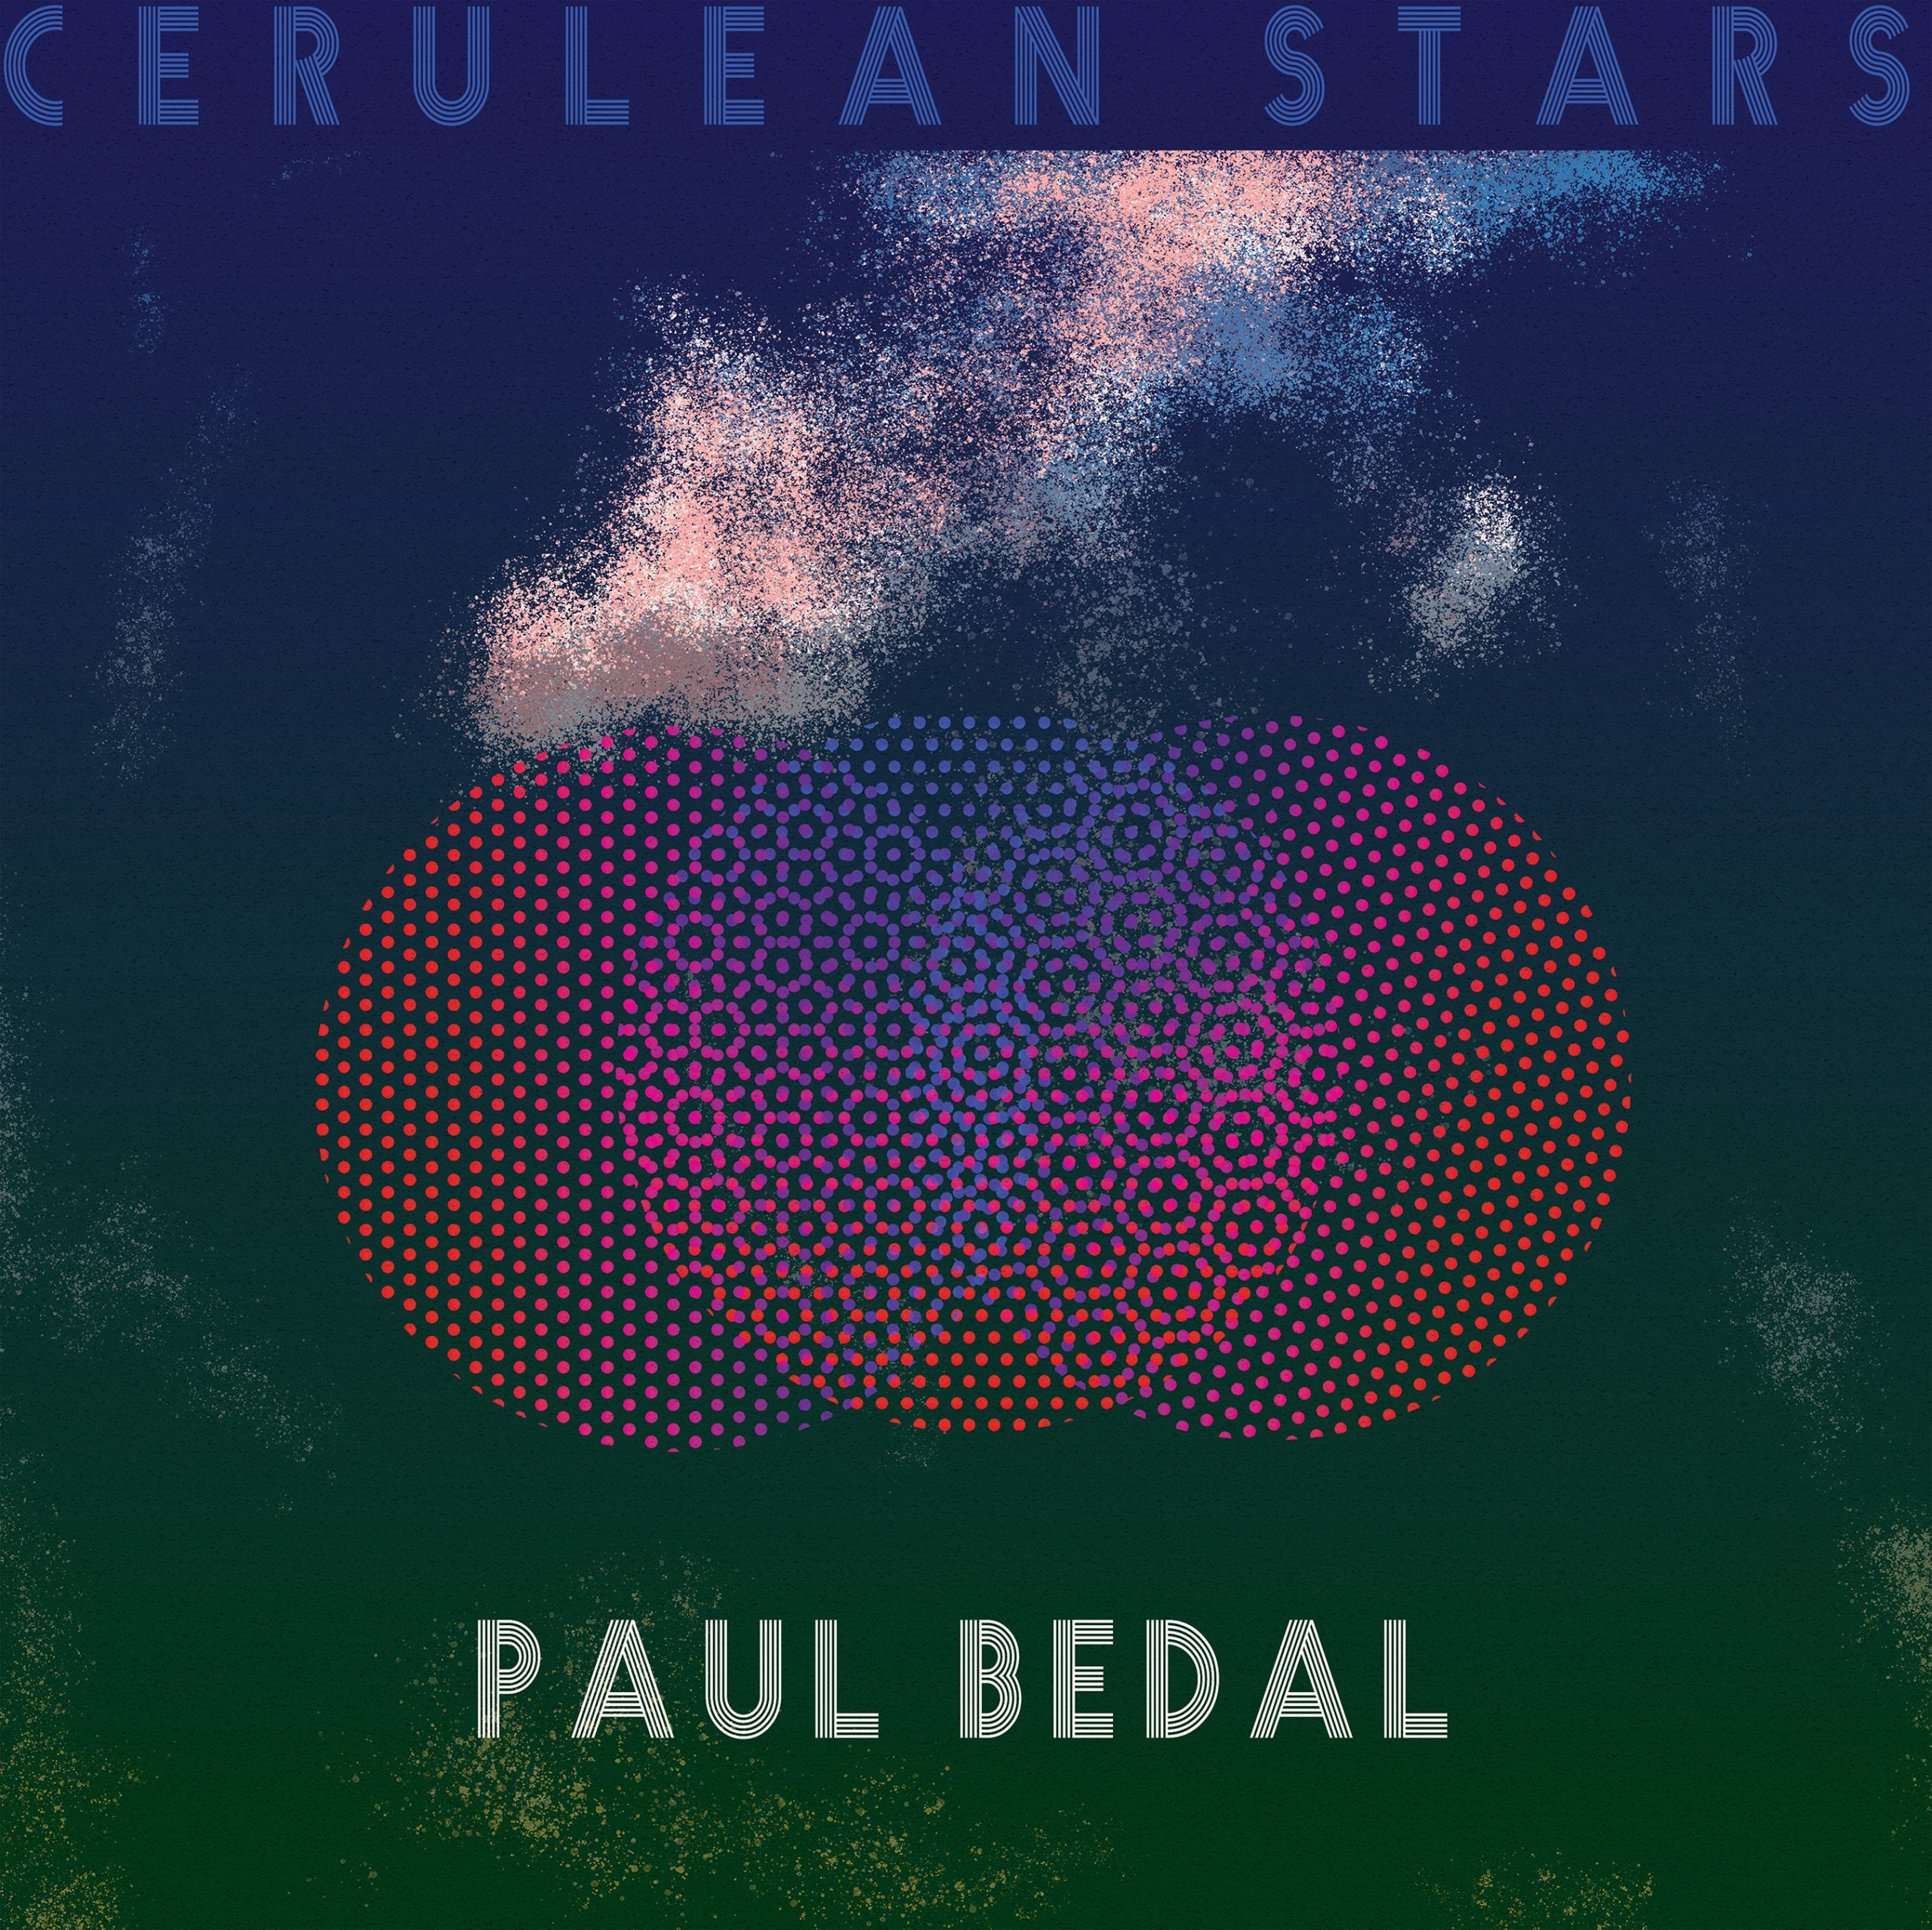 NEW RELEASE: Paul Bedal's 'Cerulean Stars' is out March 12, 2021 via BACE Records